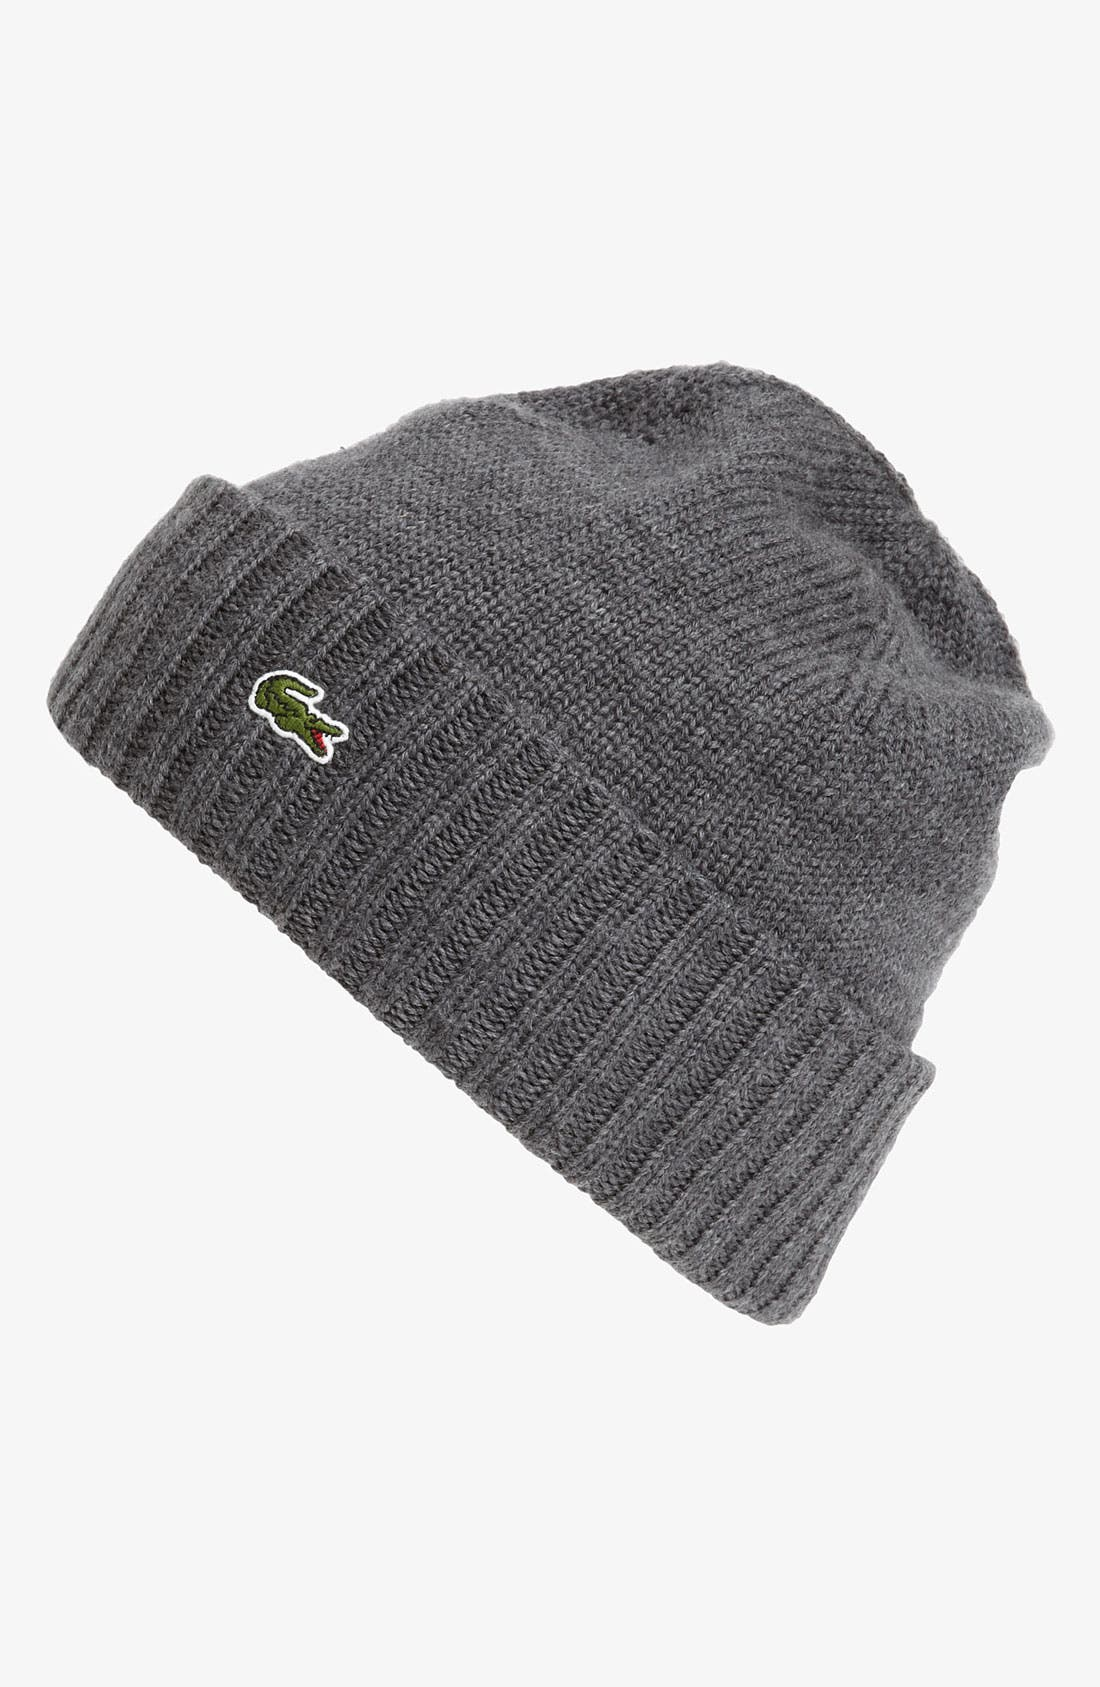 Alternate Image 1 Selected - Lacoste Wool Knit Cap